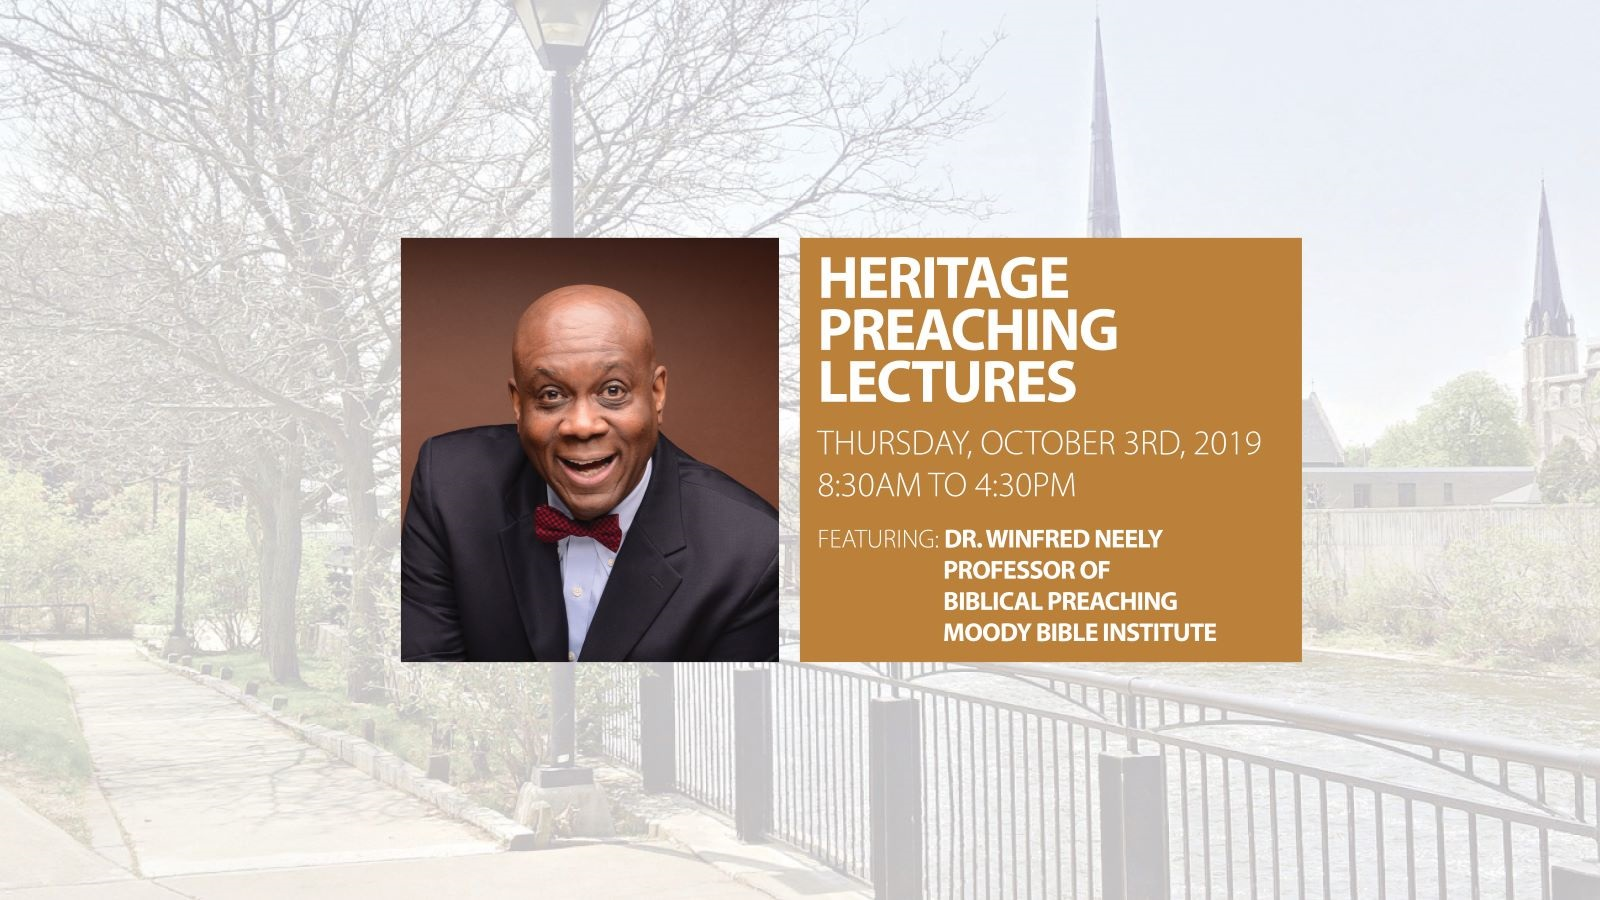 Heritage Preaching Lectures 2019 Story